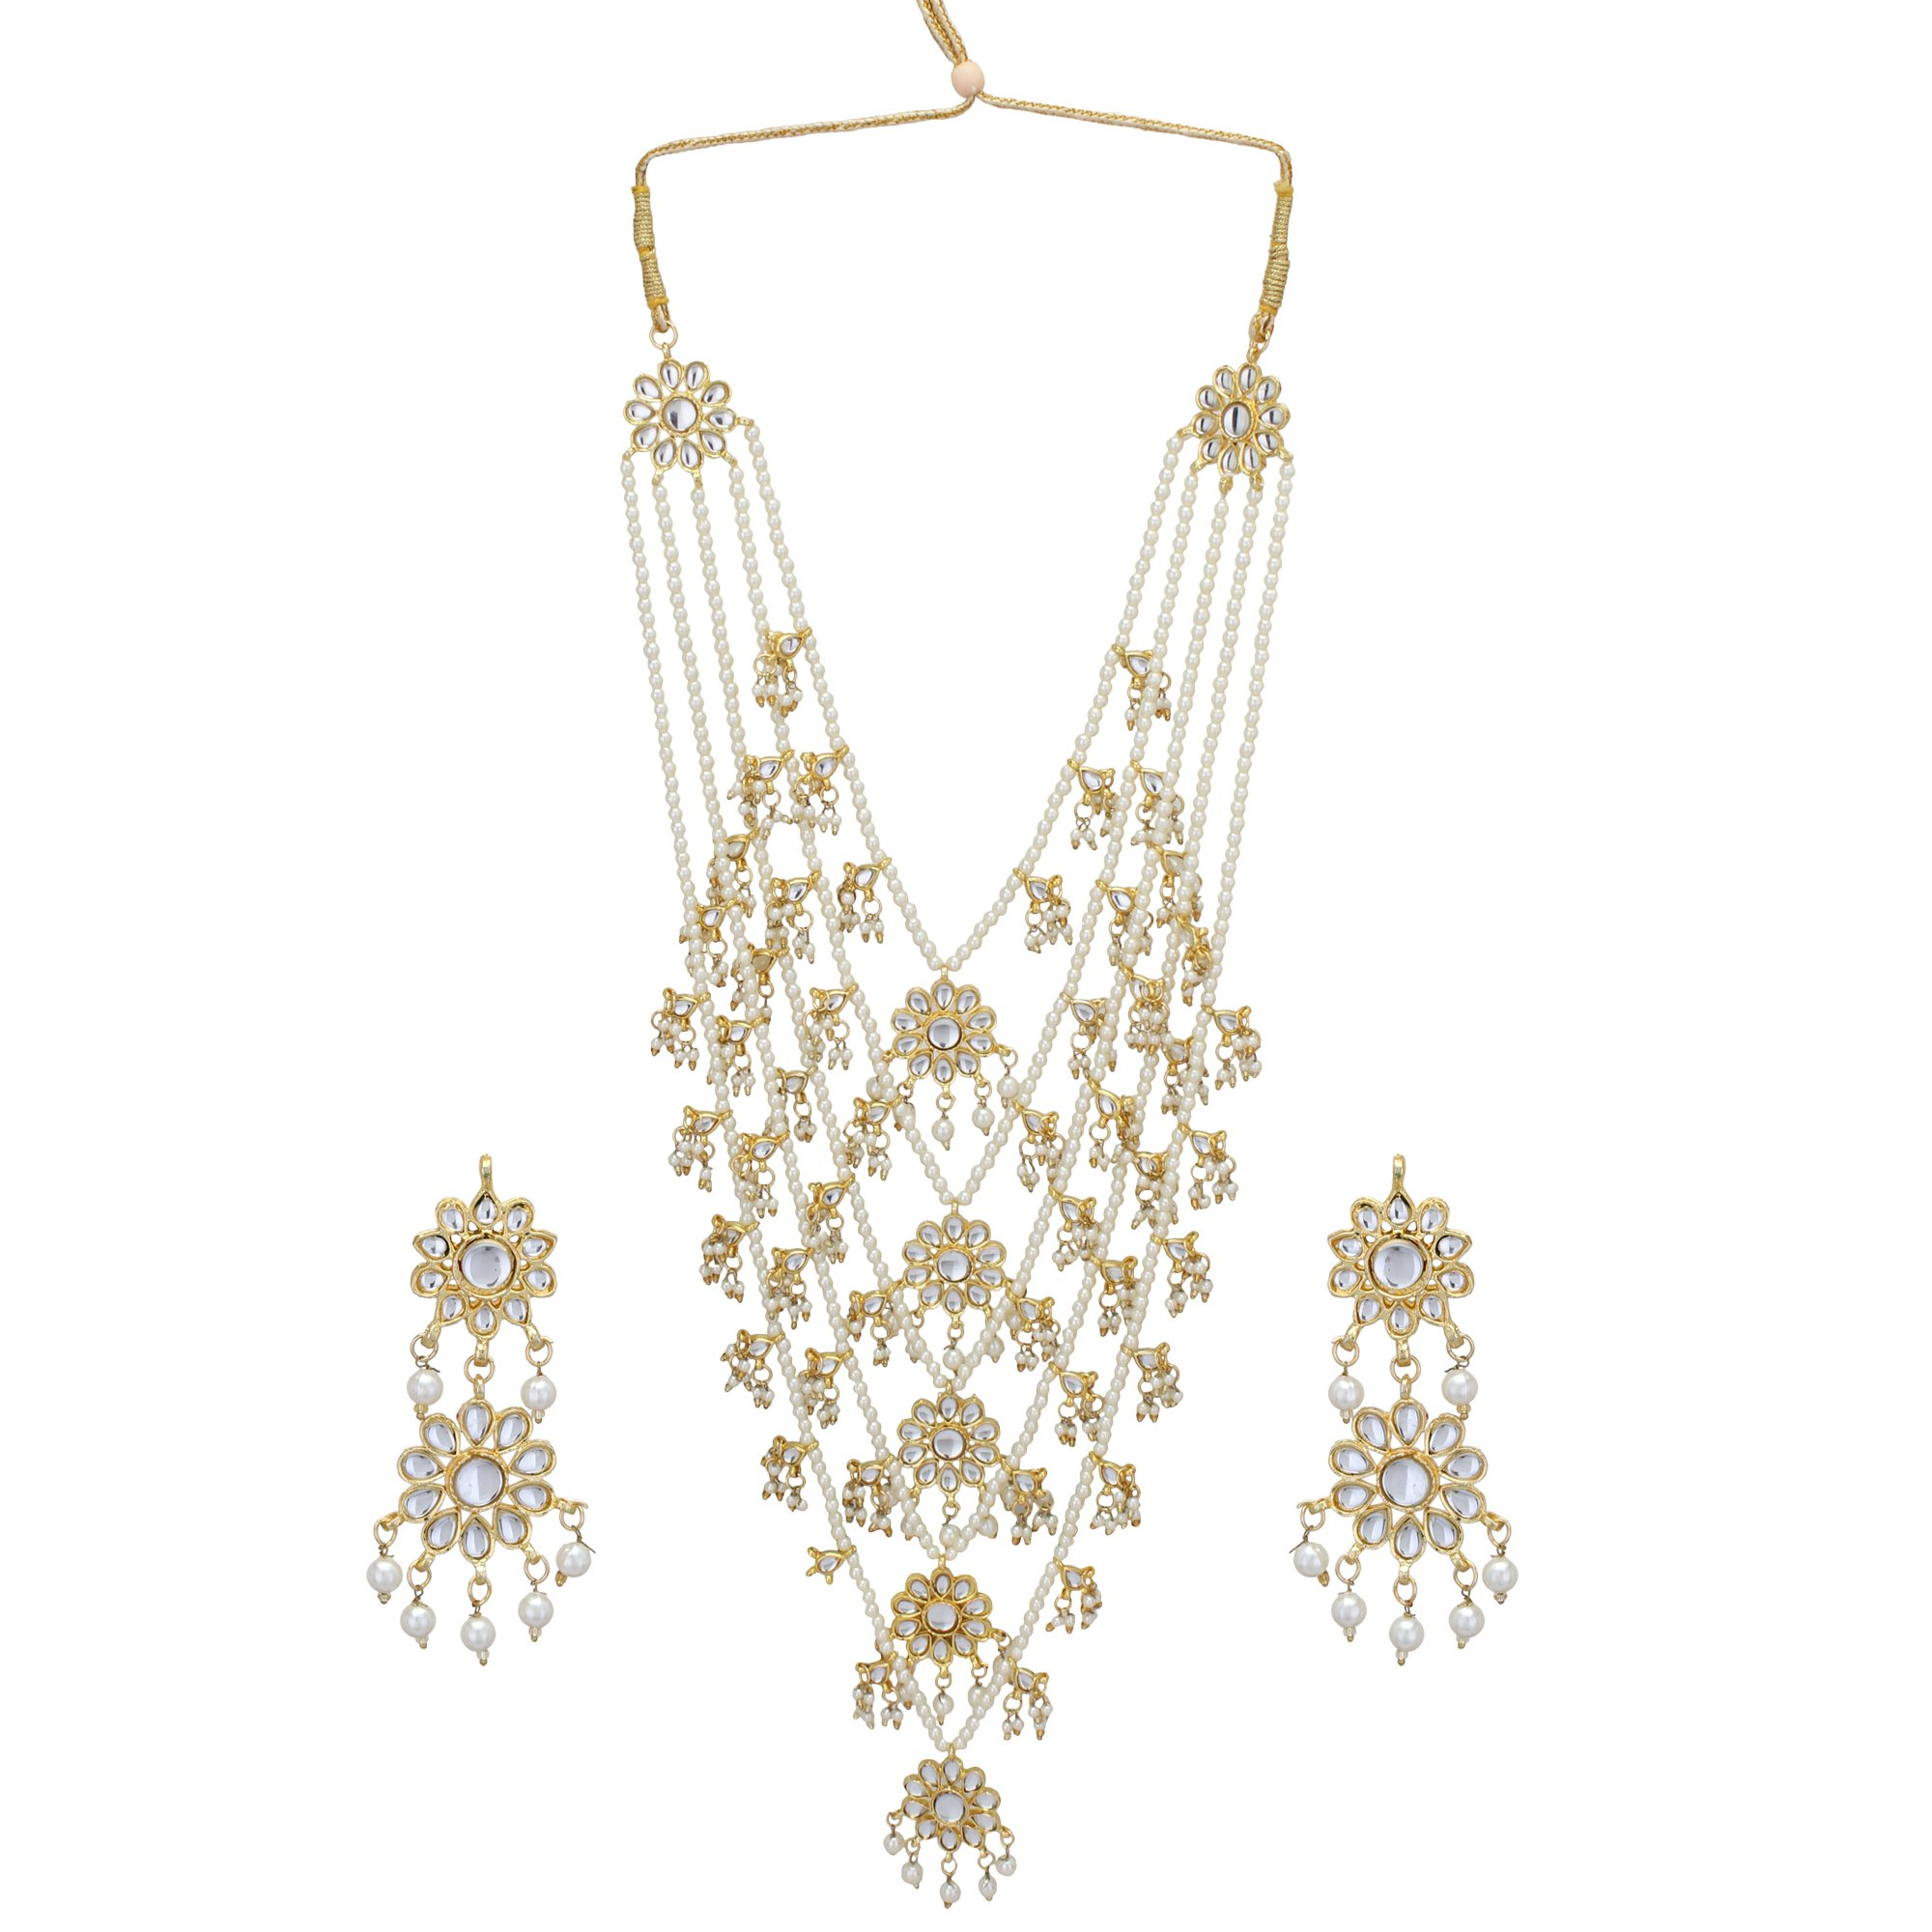 Jwellmart Fashion Ethnic Faux Pearl Multiline Kundan Brooch Indian Necklace Jewelry Set for Girls and Women (5-Line)